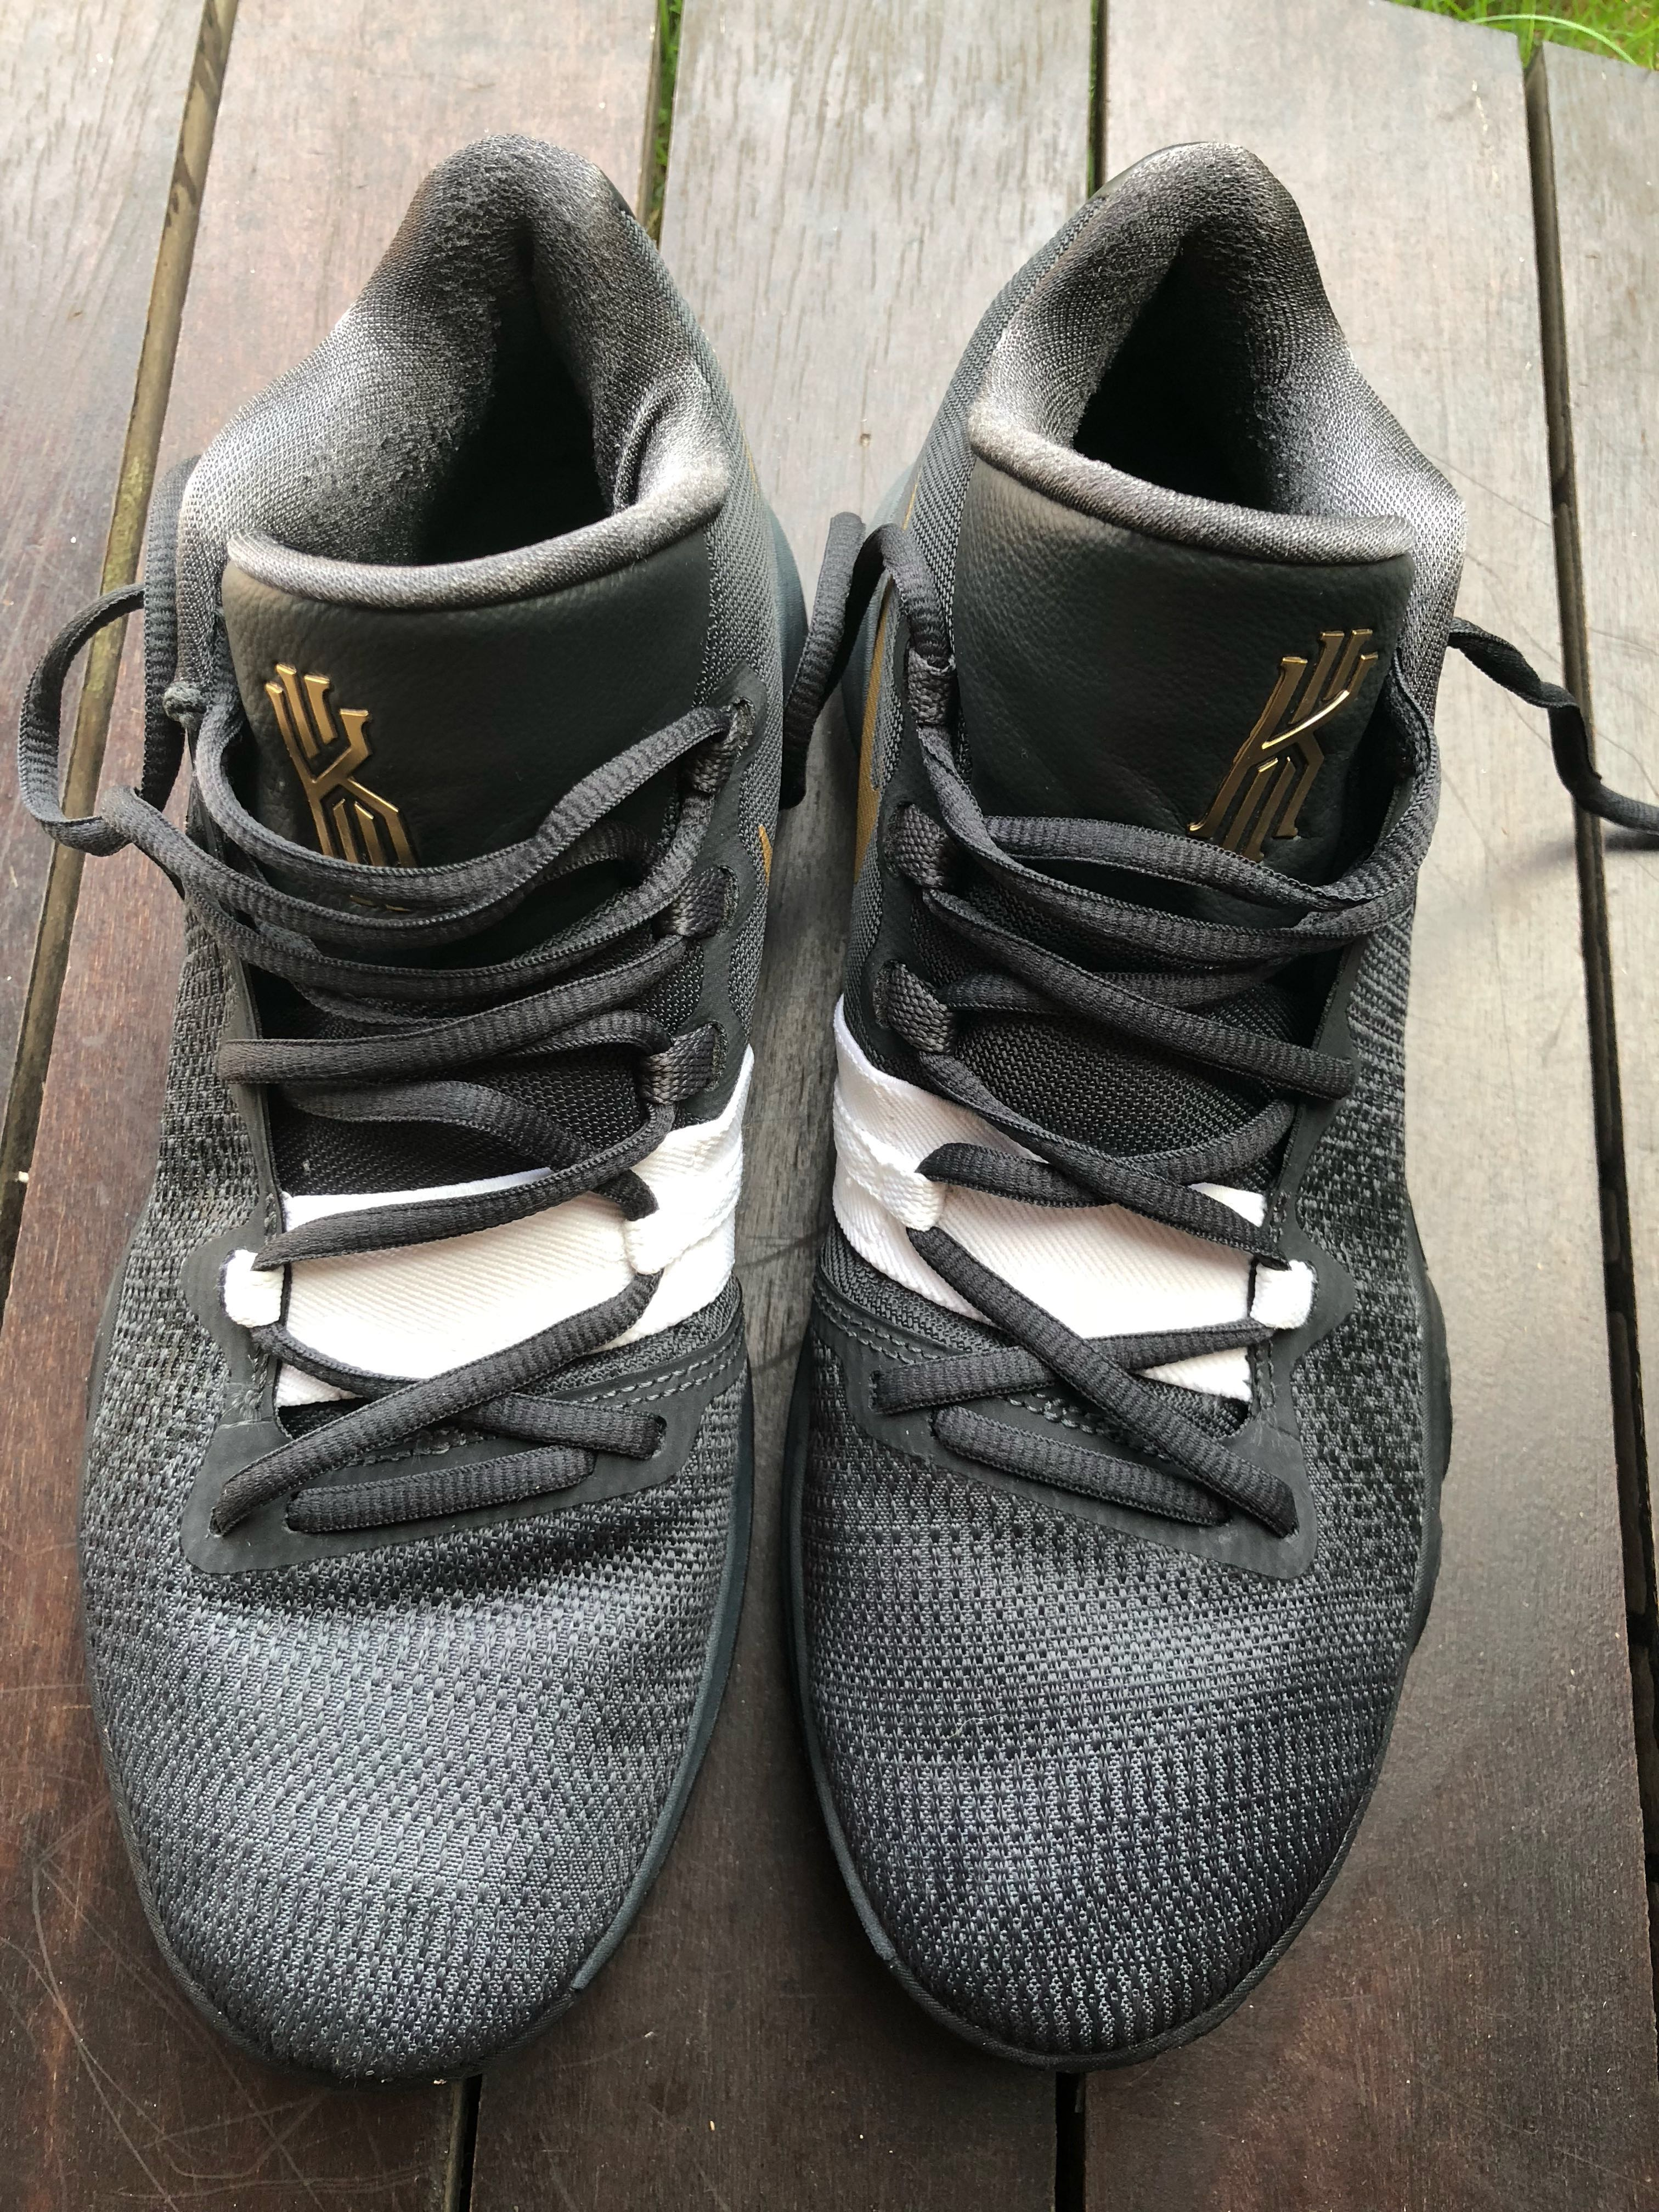 e77ea1f50c60 Kyrie Flytrap black and gold basketball shoes